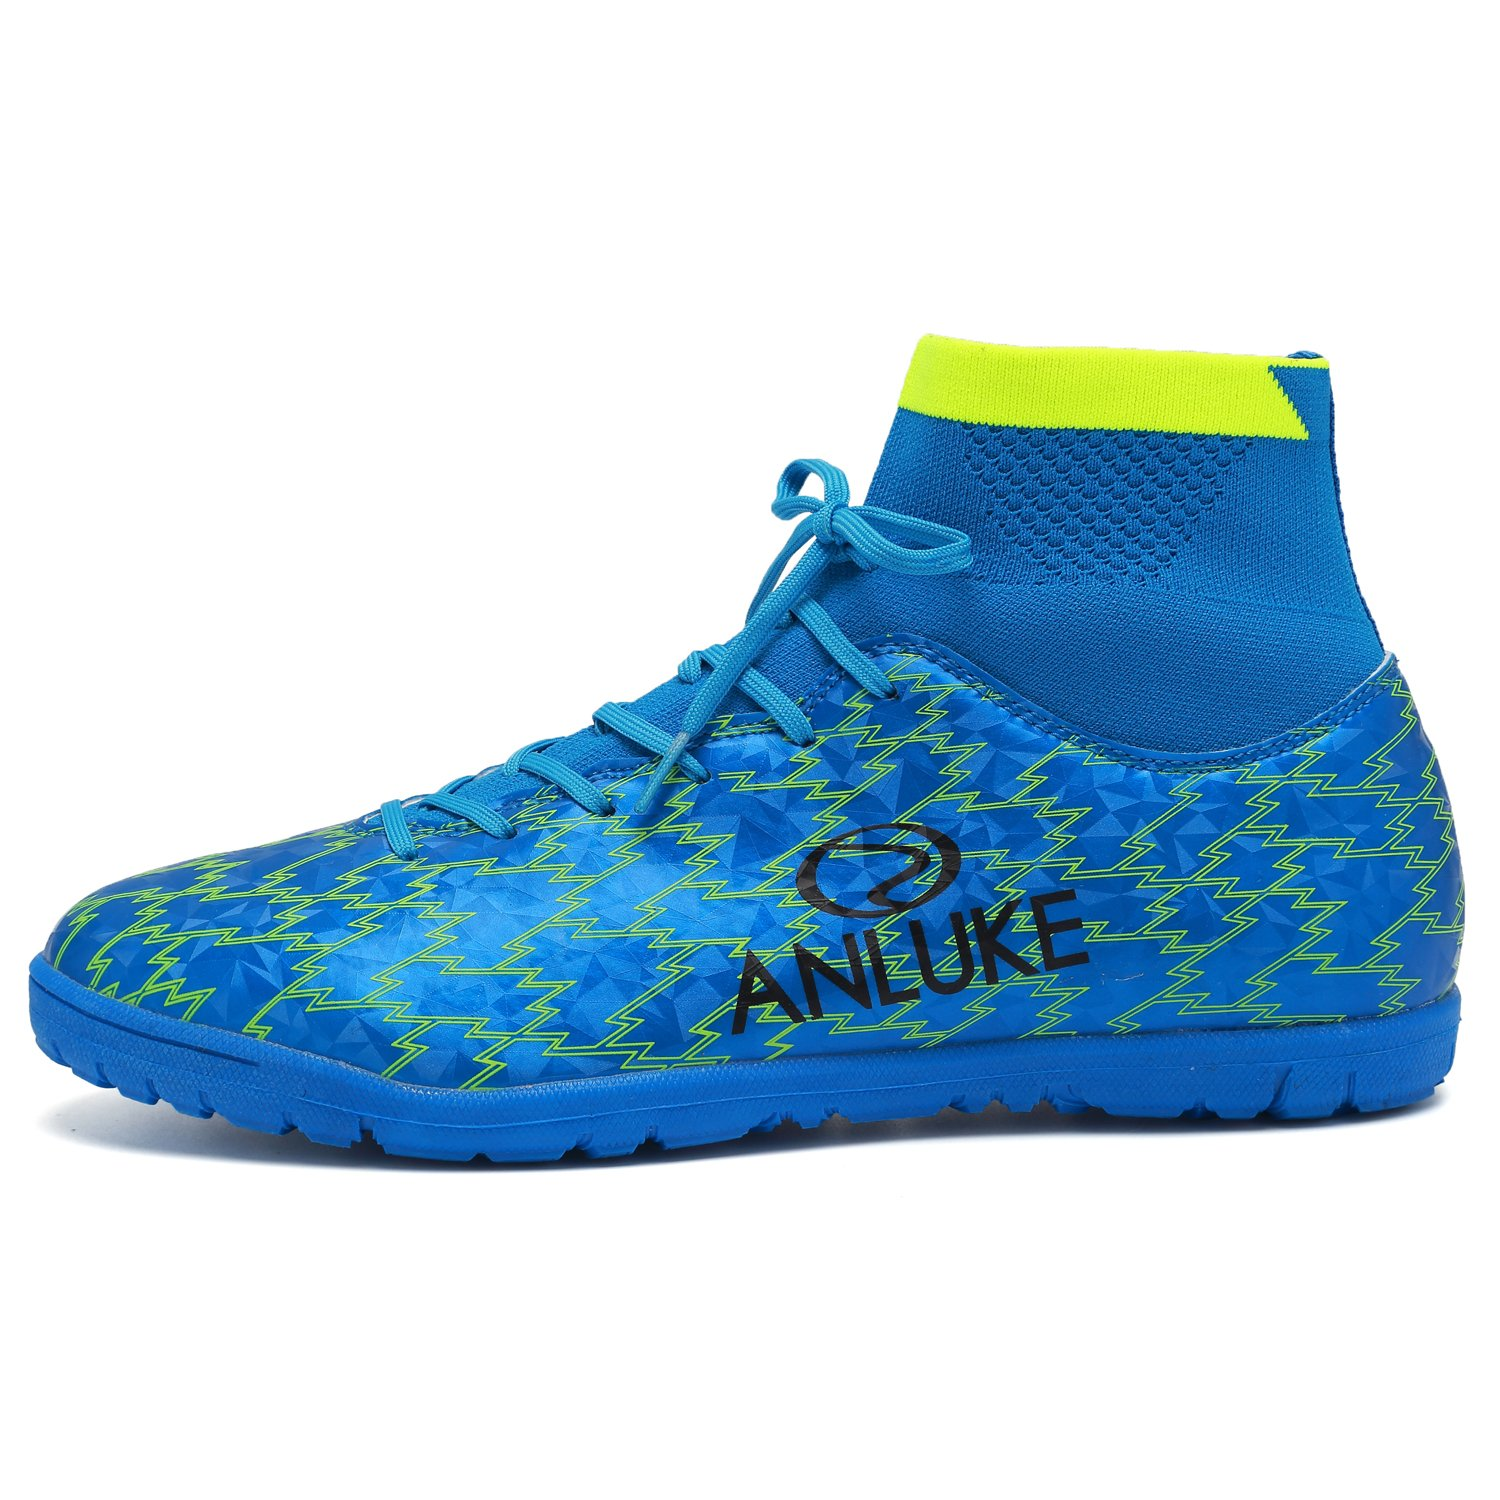 ANLUKE Mens Hightop Training Soccer Shoes TF Football Boots